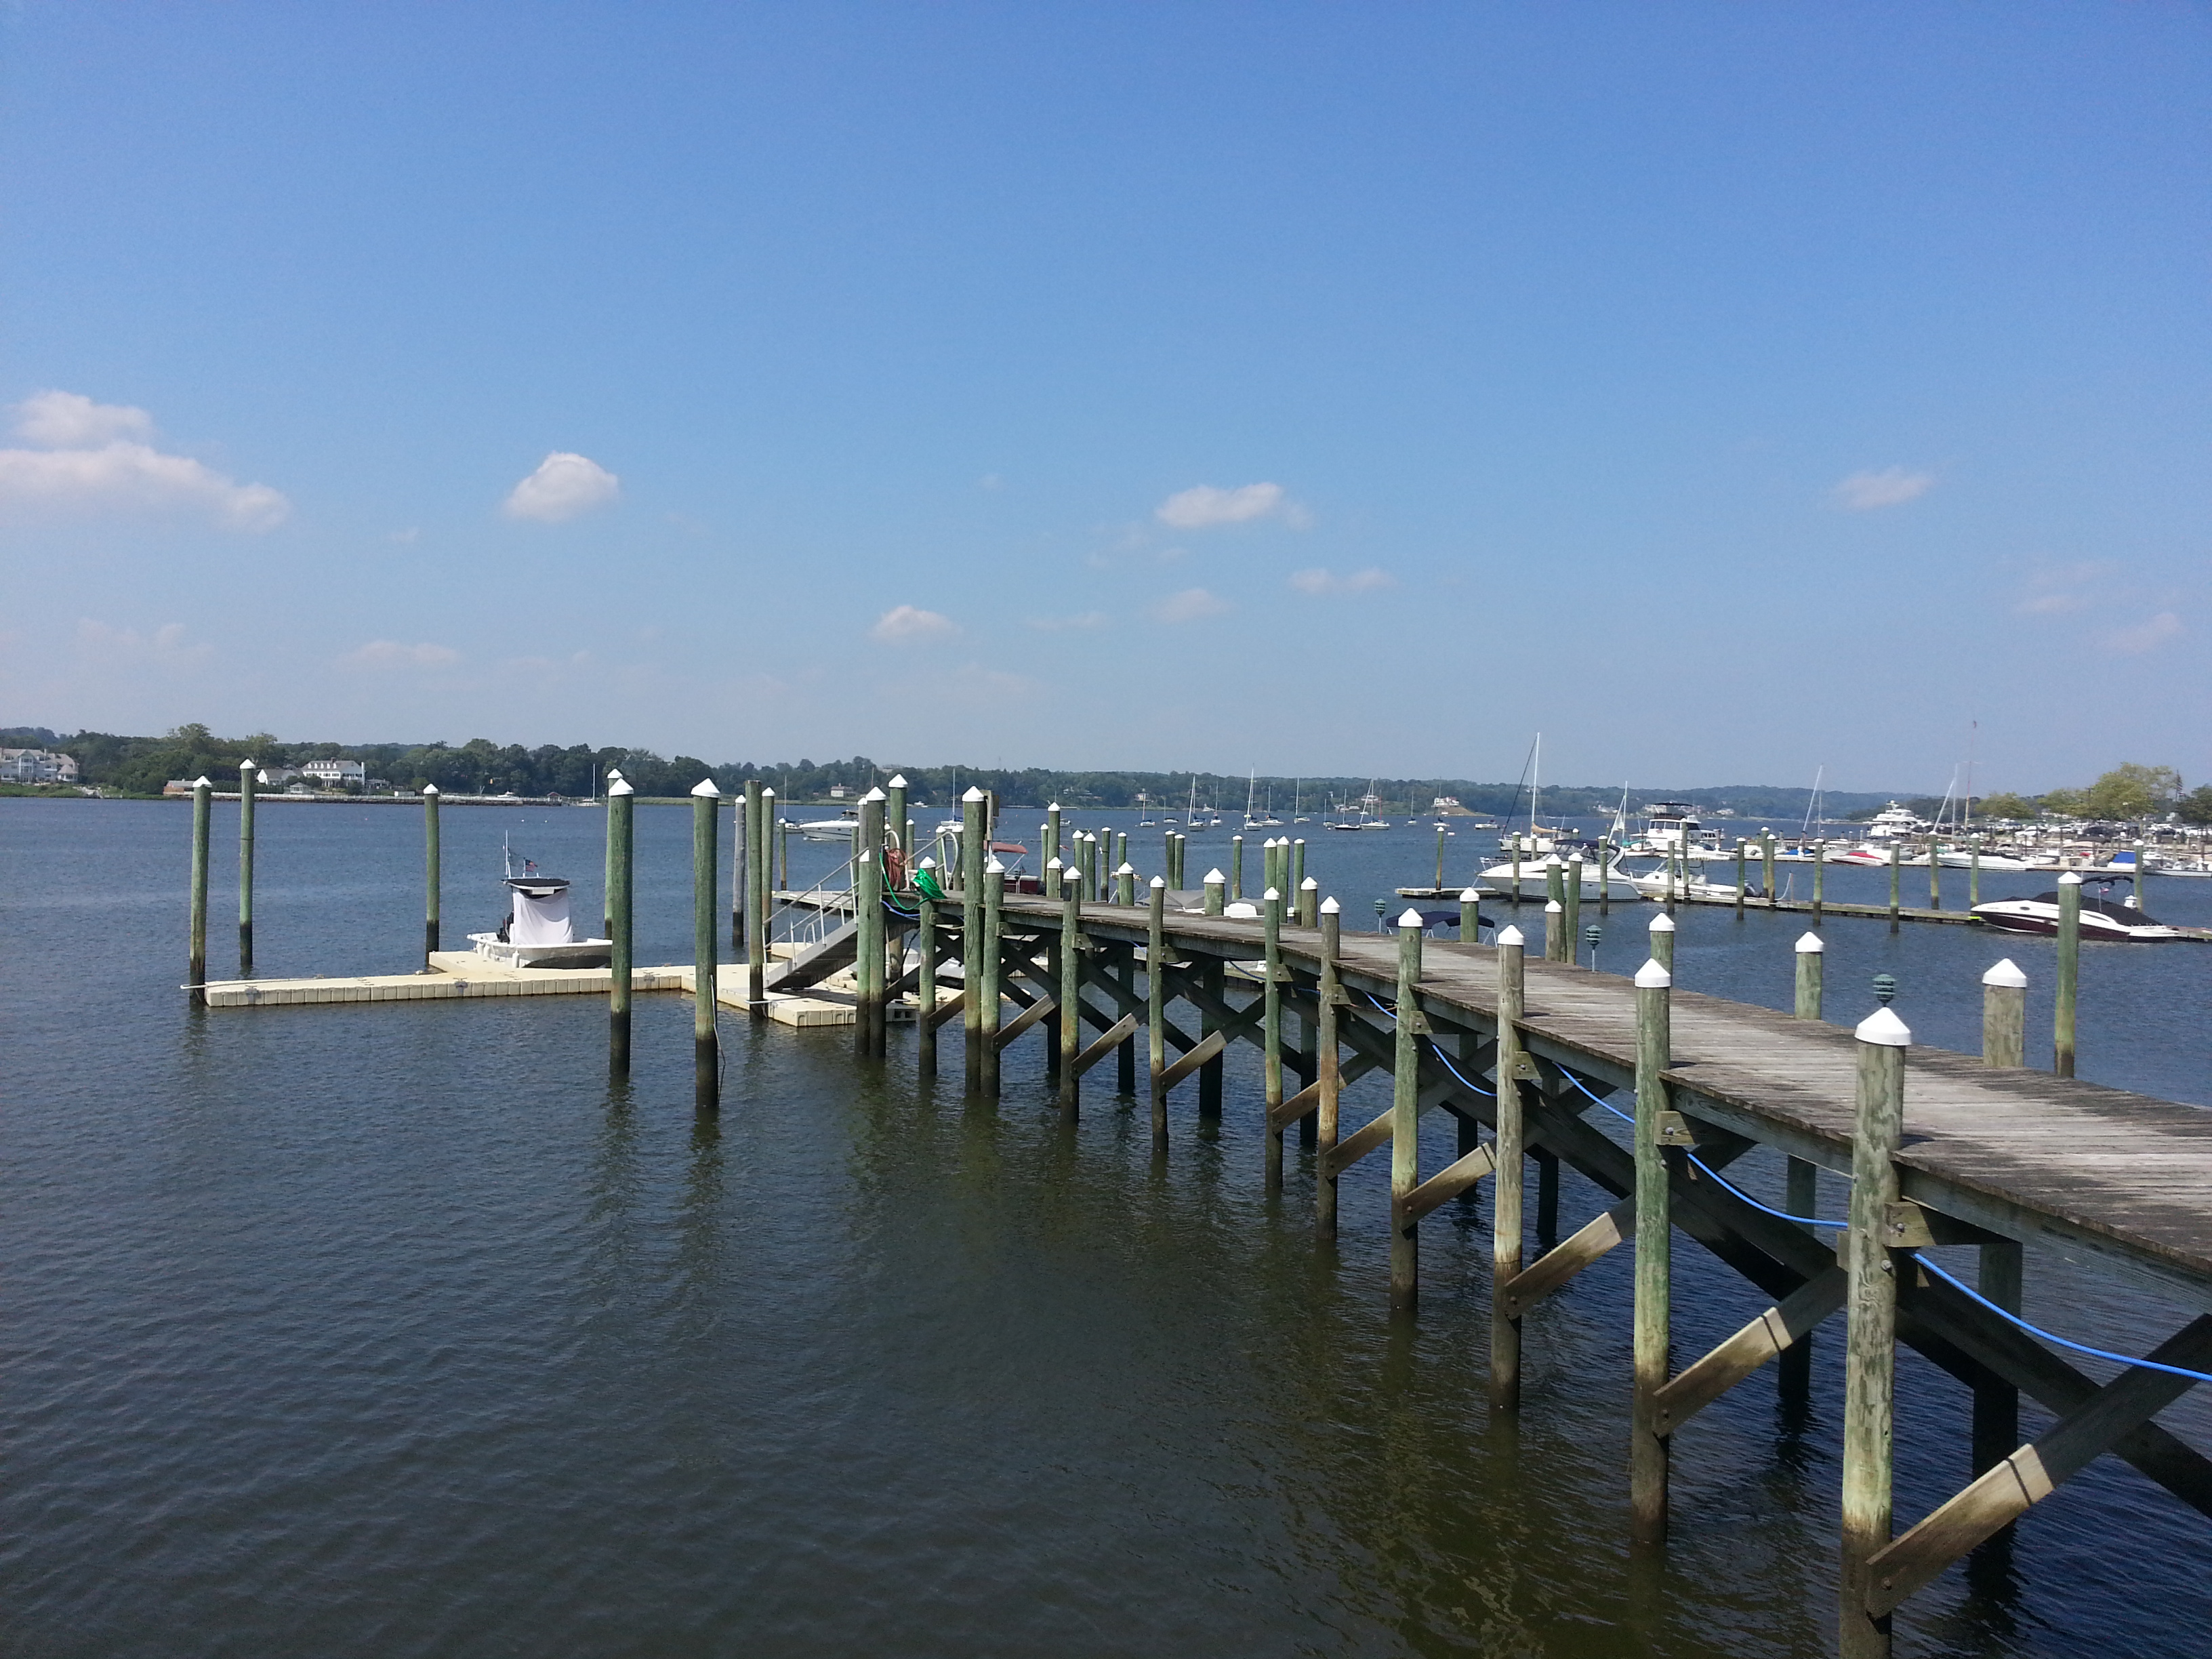 Located on the Navesink River, Corinthian Cove has a boat dock with deeded slips for some units.